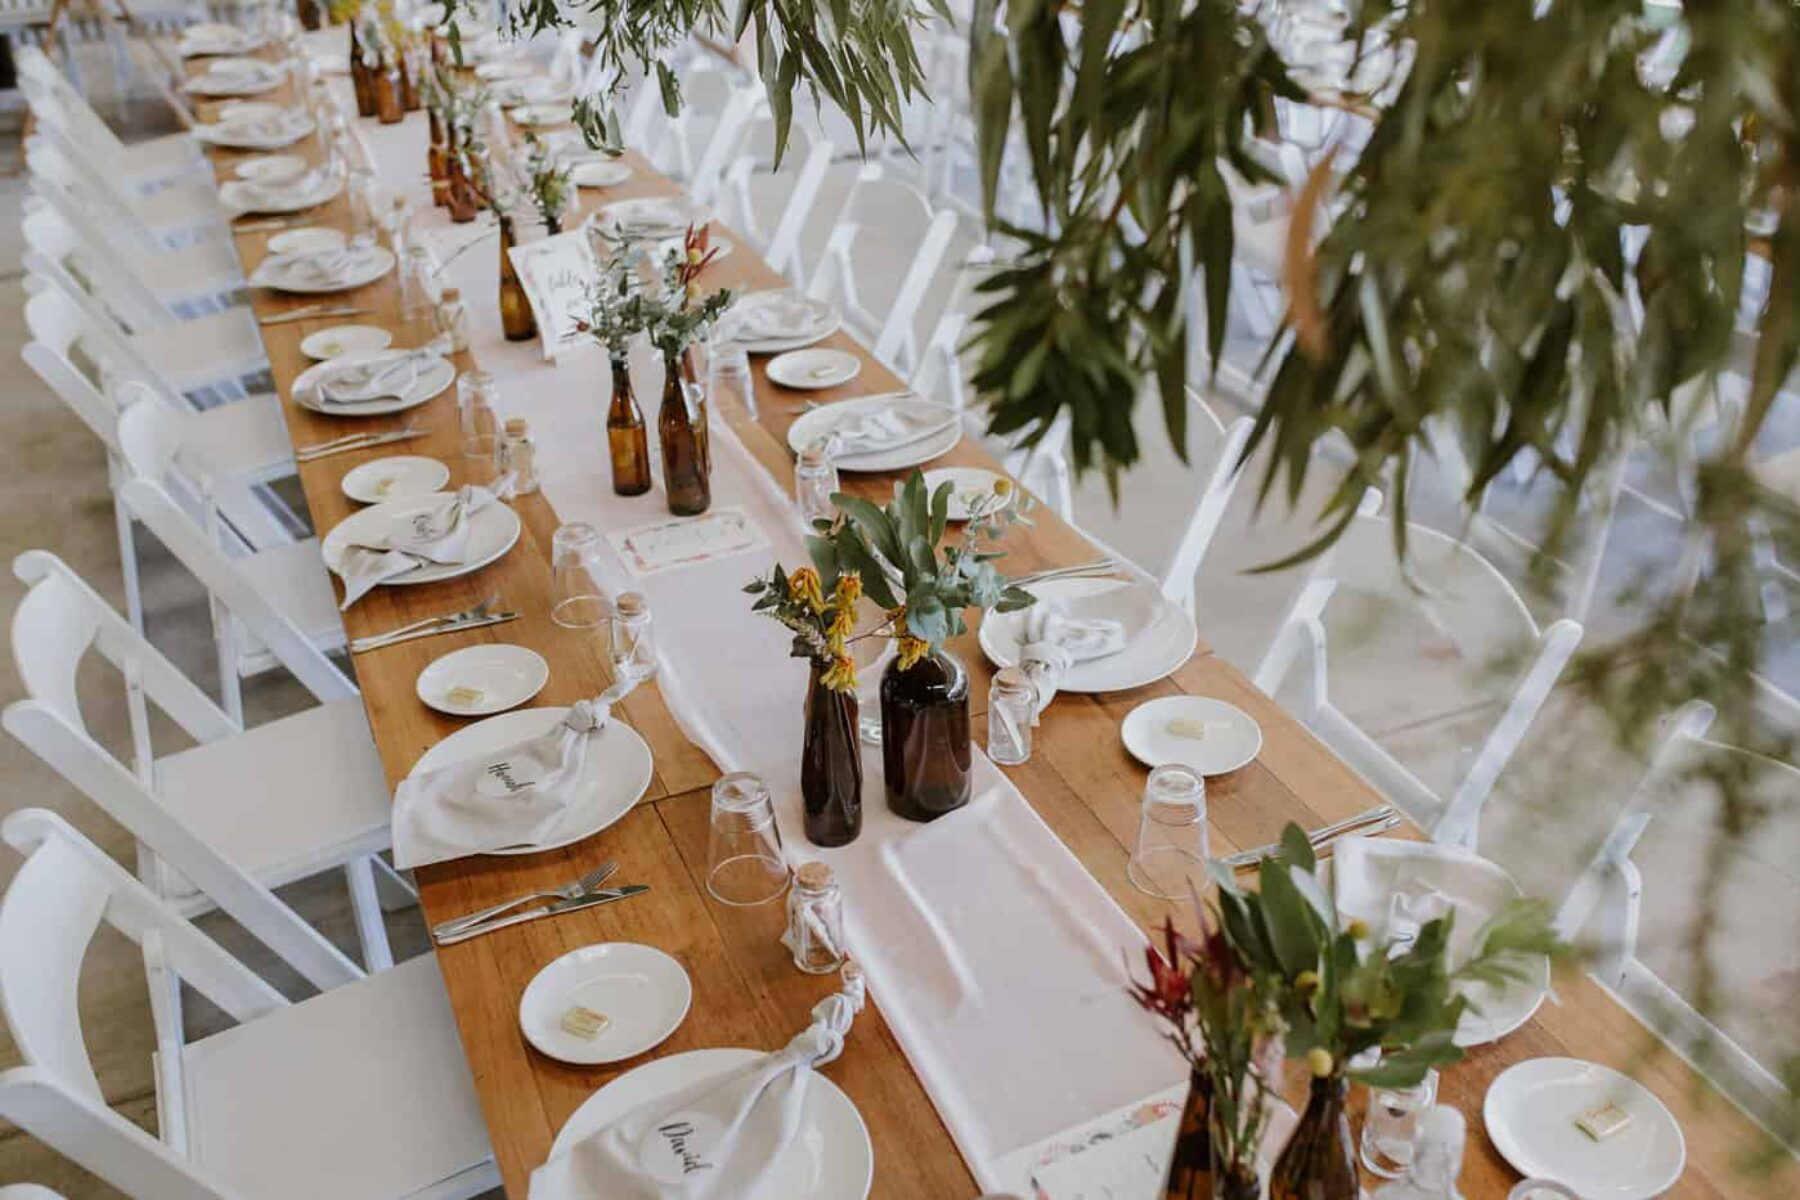 blush tablescape with chiffon runner and hanging foliage